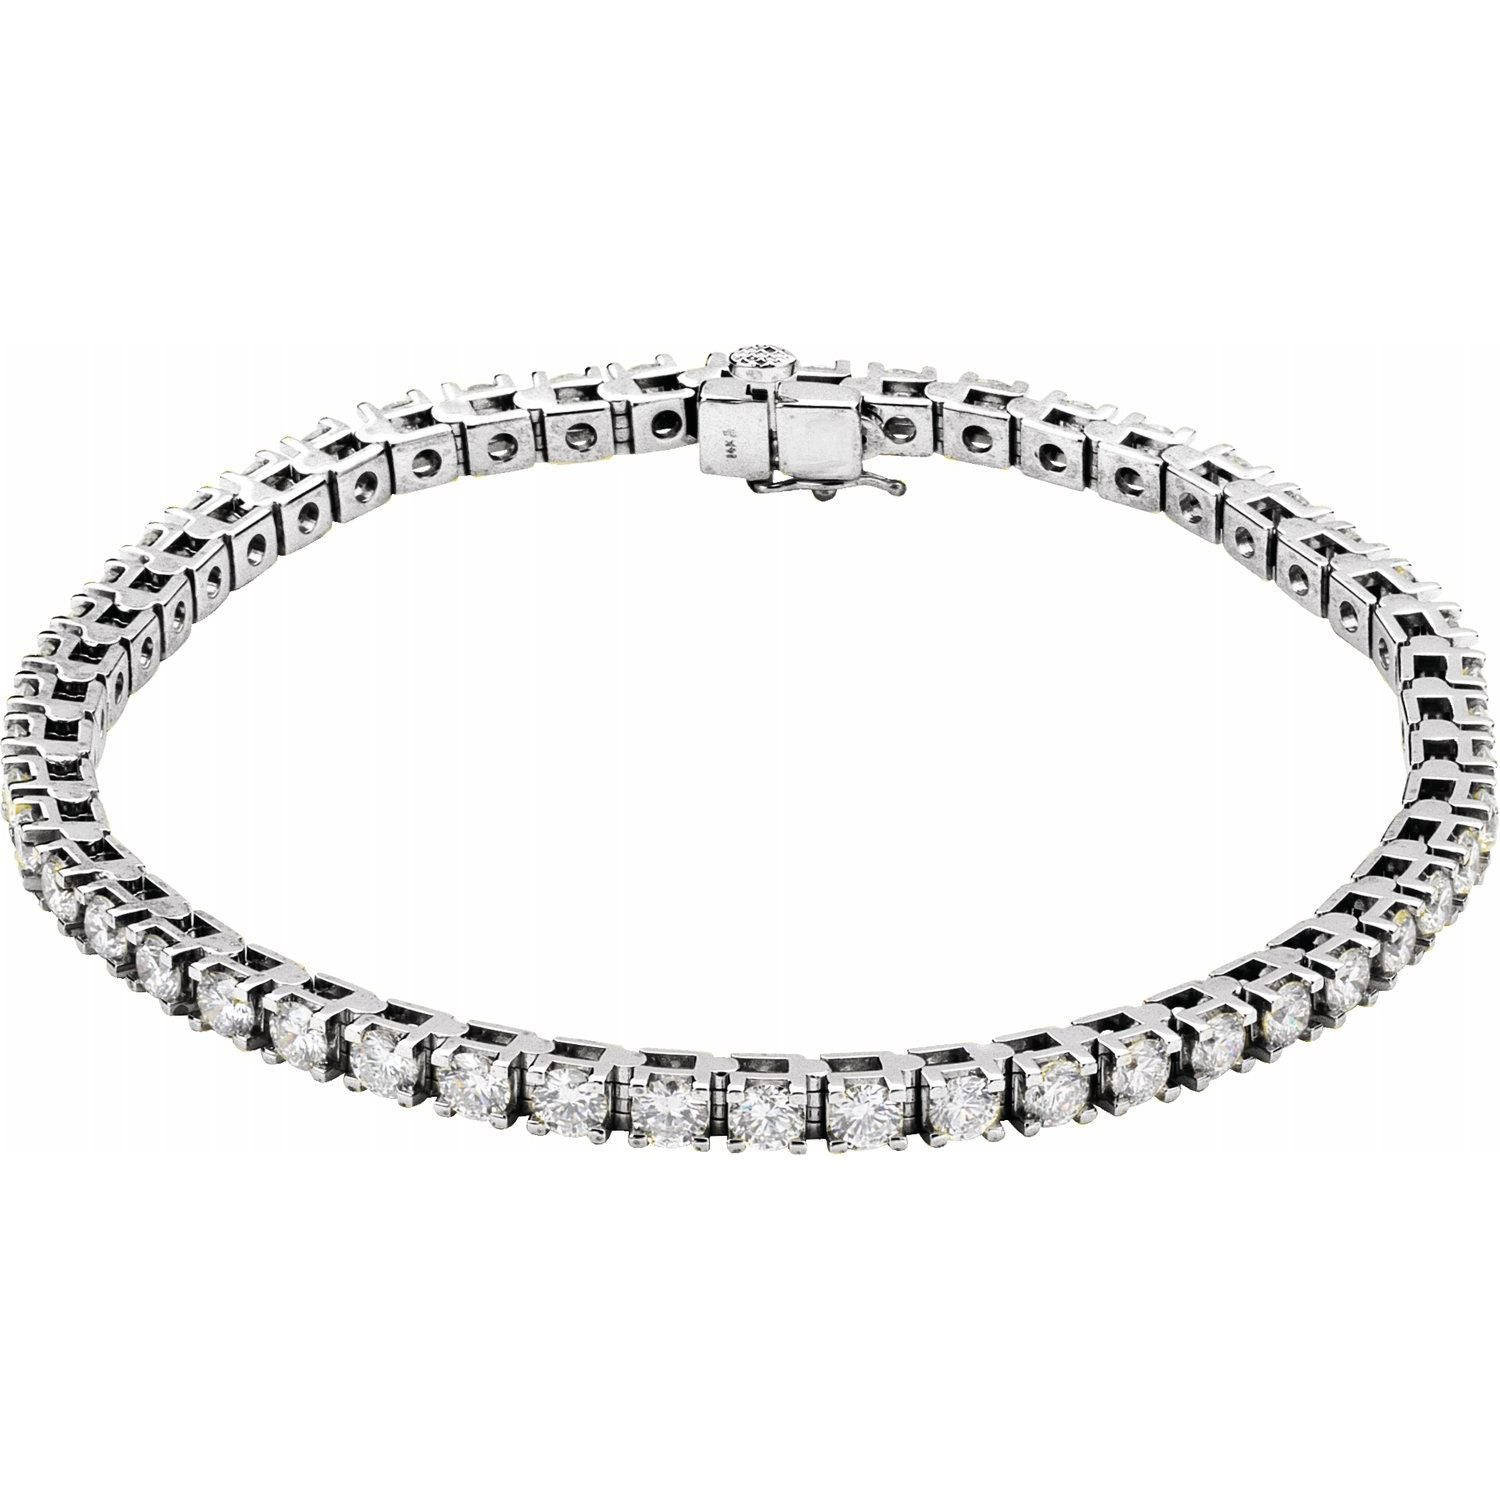 5 CTW Lab-Grown Diamond Tennis Bracelet